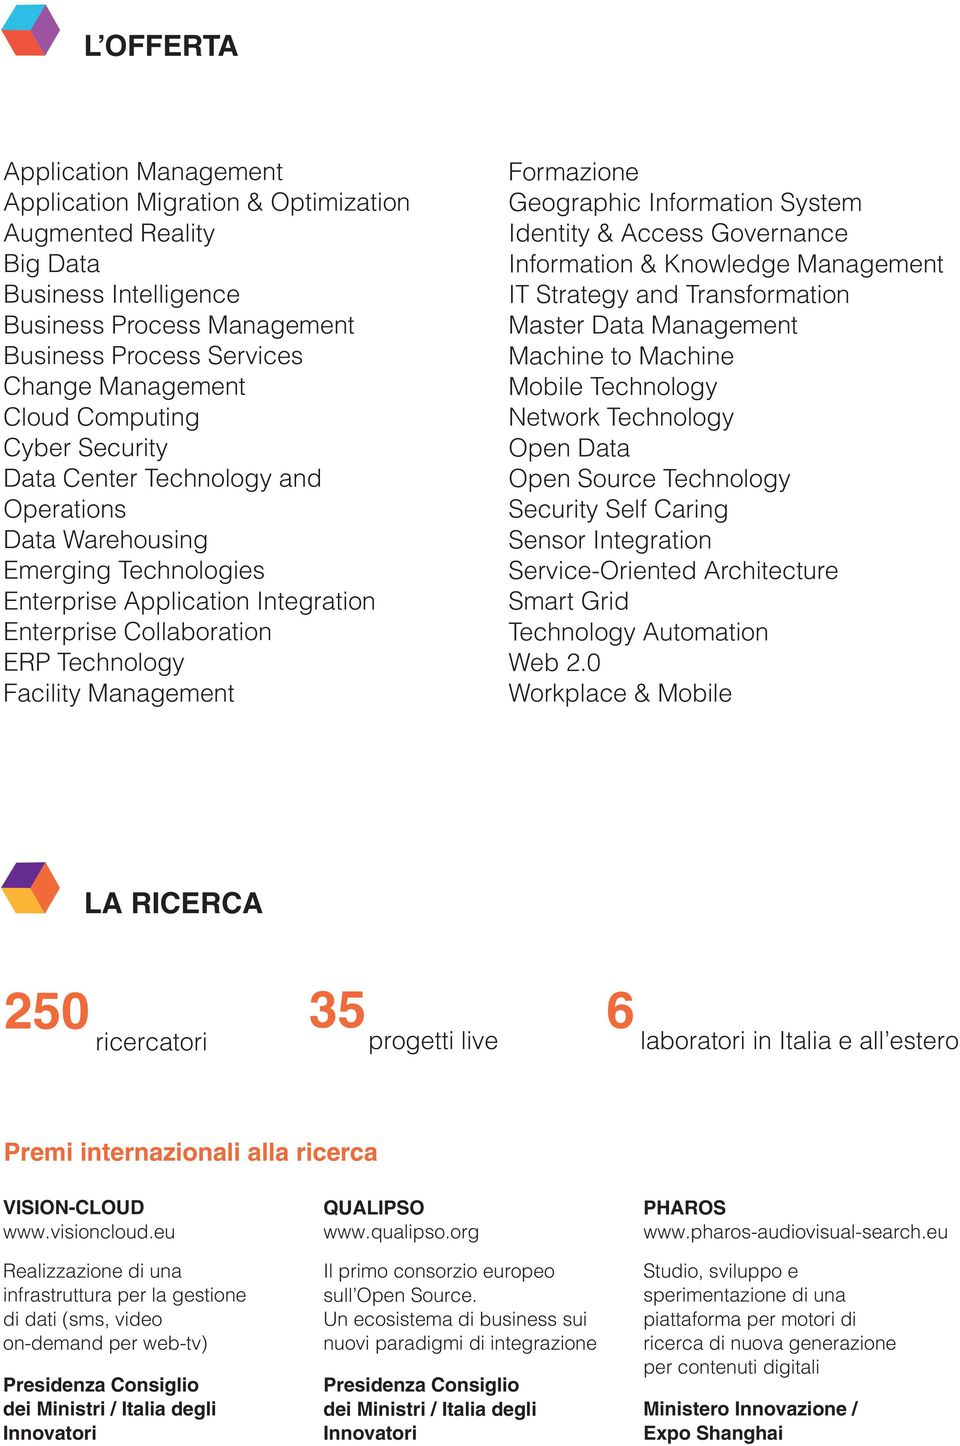 Formazione Geographic Information System Identity & Access Governance Information & Knowledge Management IT Strategy and Transformation Master Data Management Machine to Machine Mobile Technology